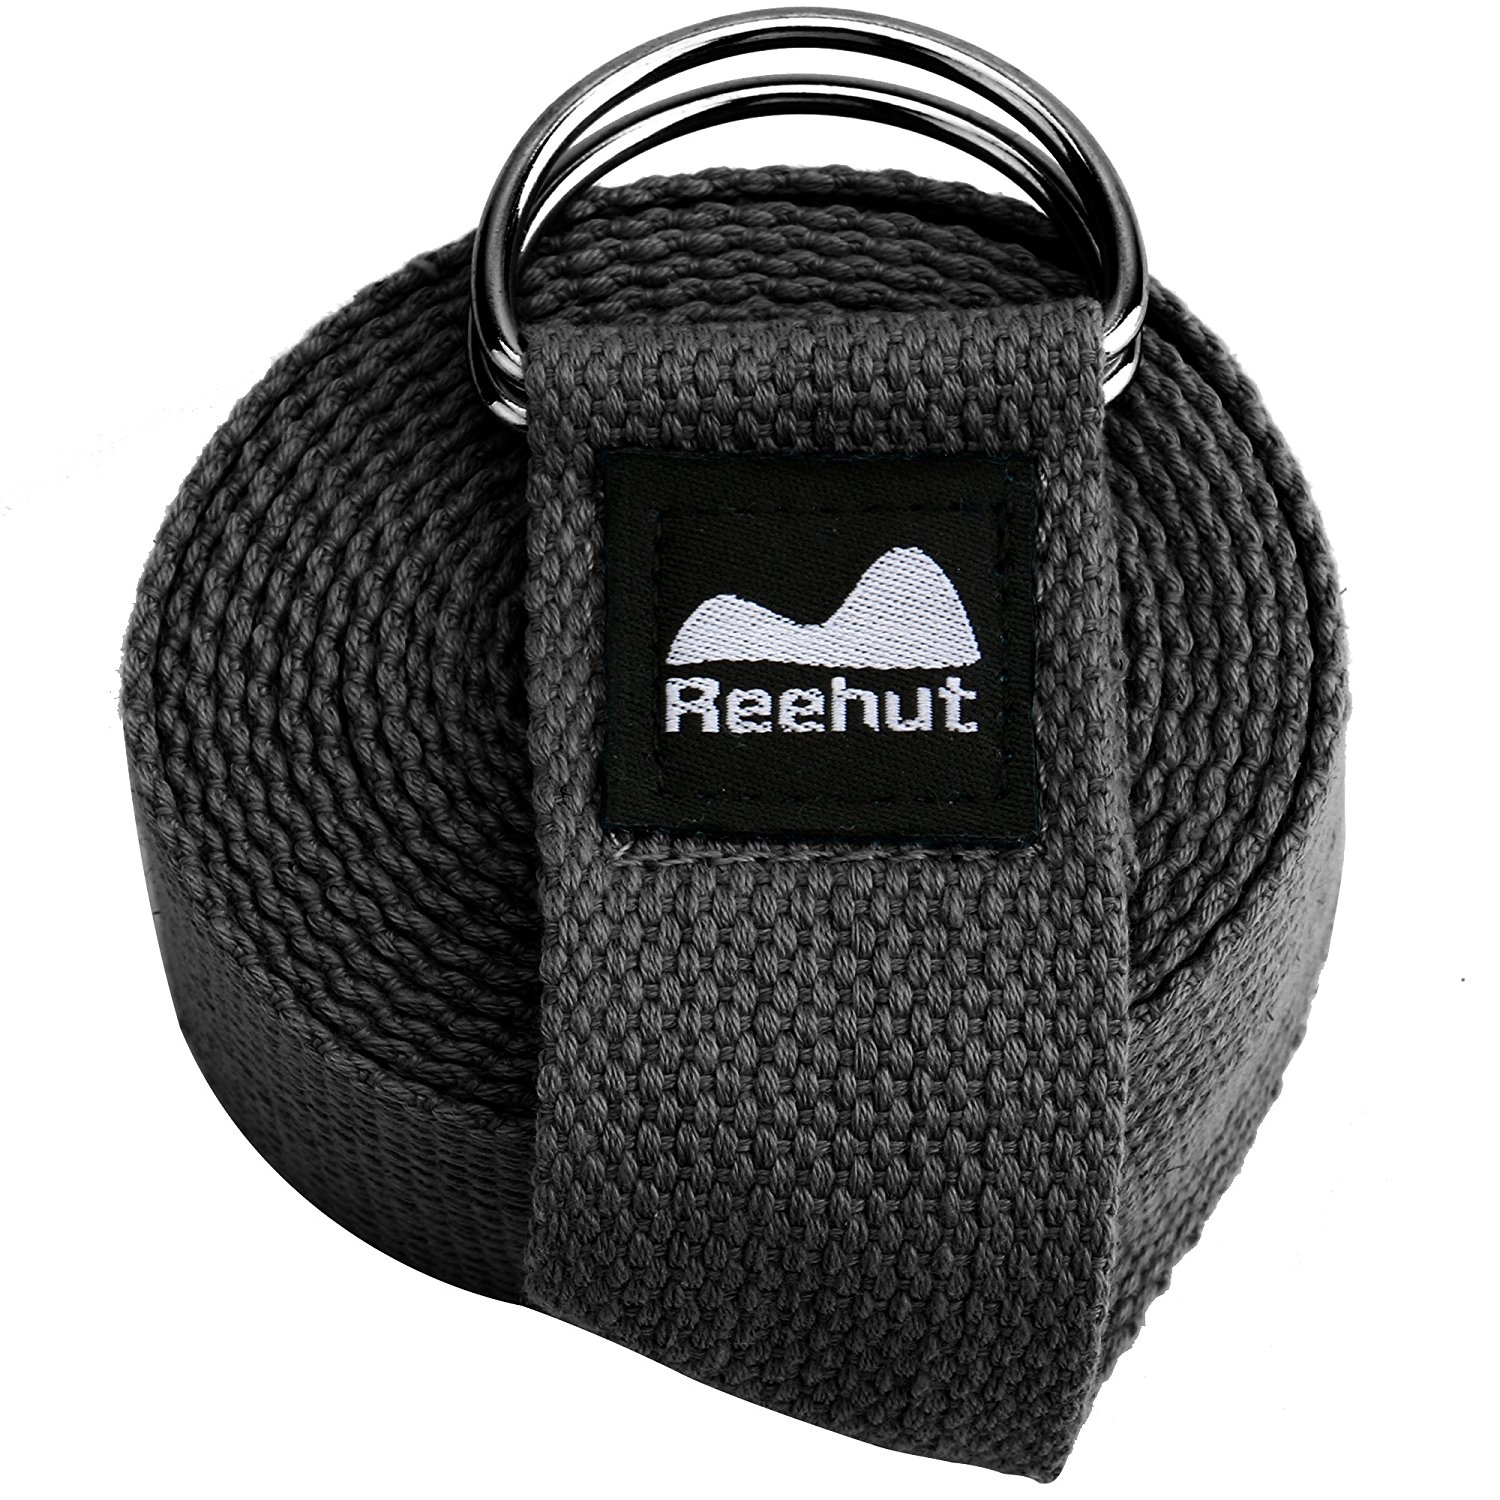 Reehut Fitness Exercise Yoga Strap w  Adjustable D-Ring Buckle for Stretching, Flexibility and Physical Therapy (Black,... by REEHUT